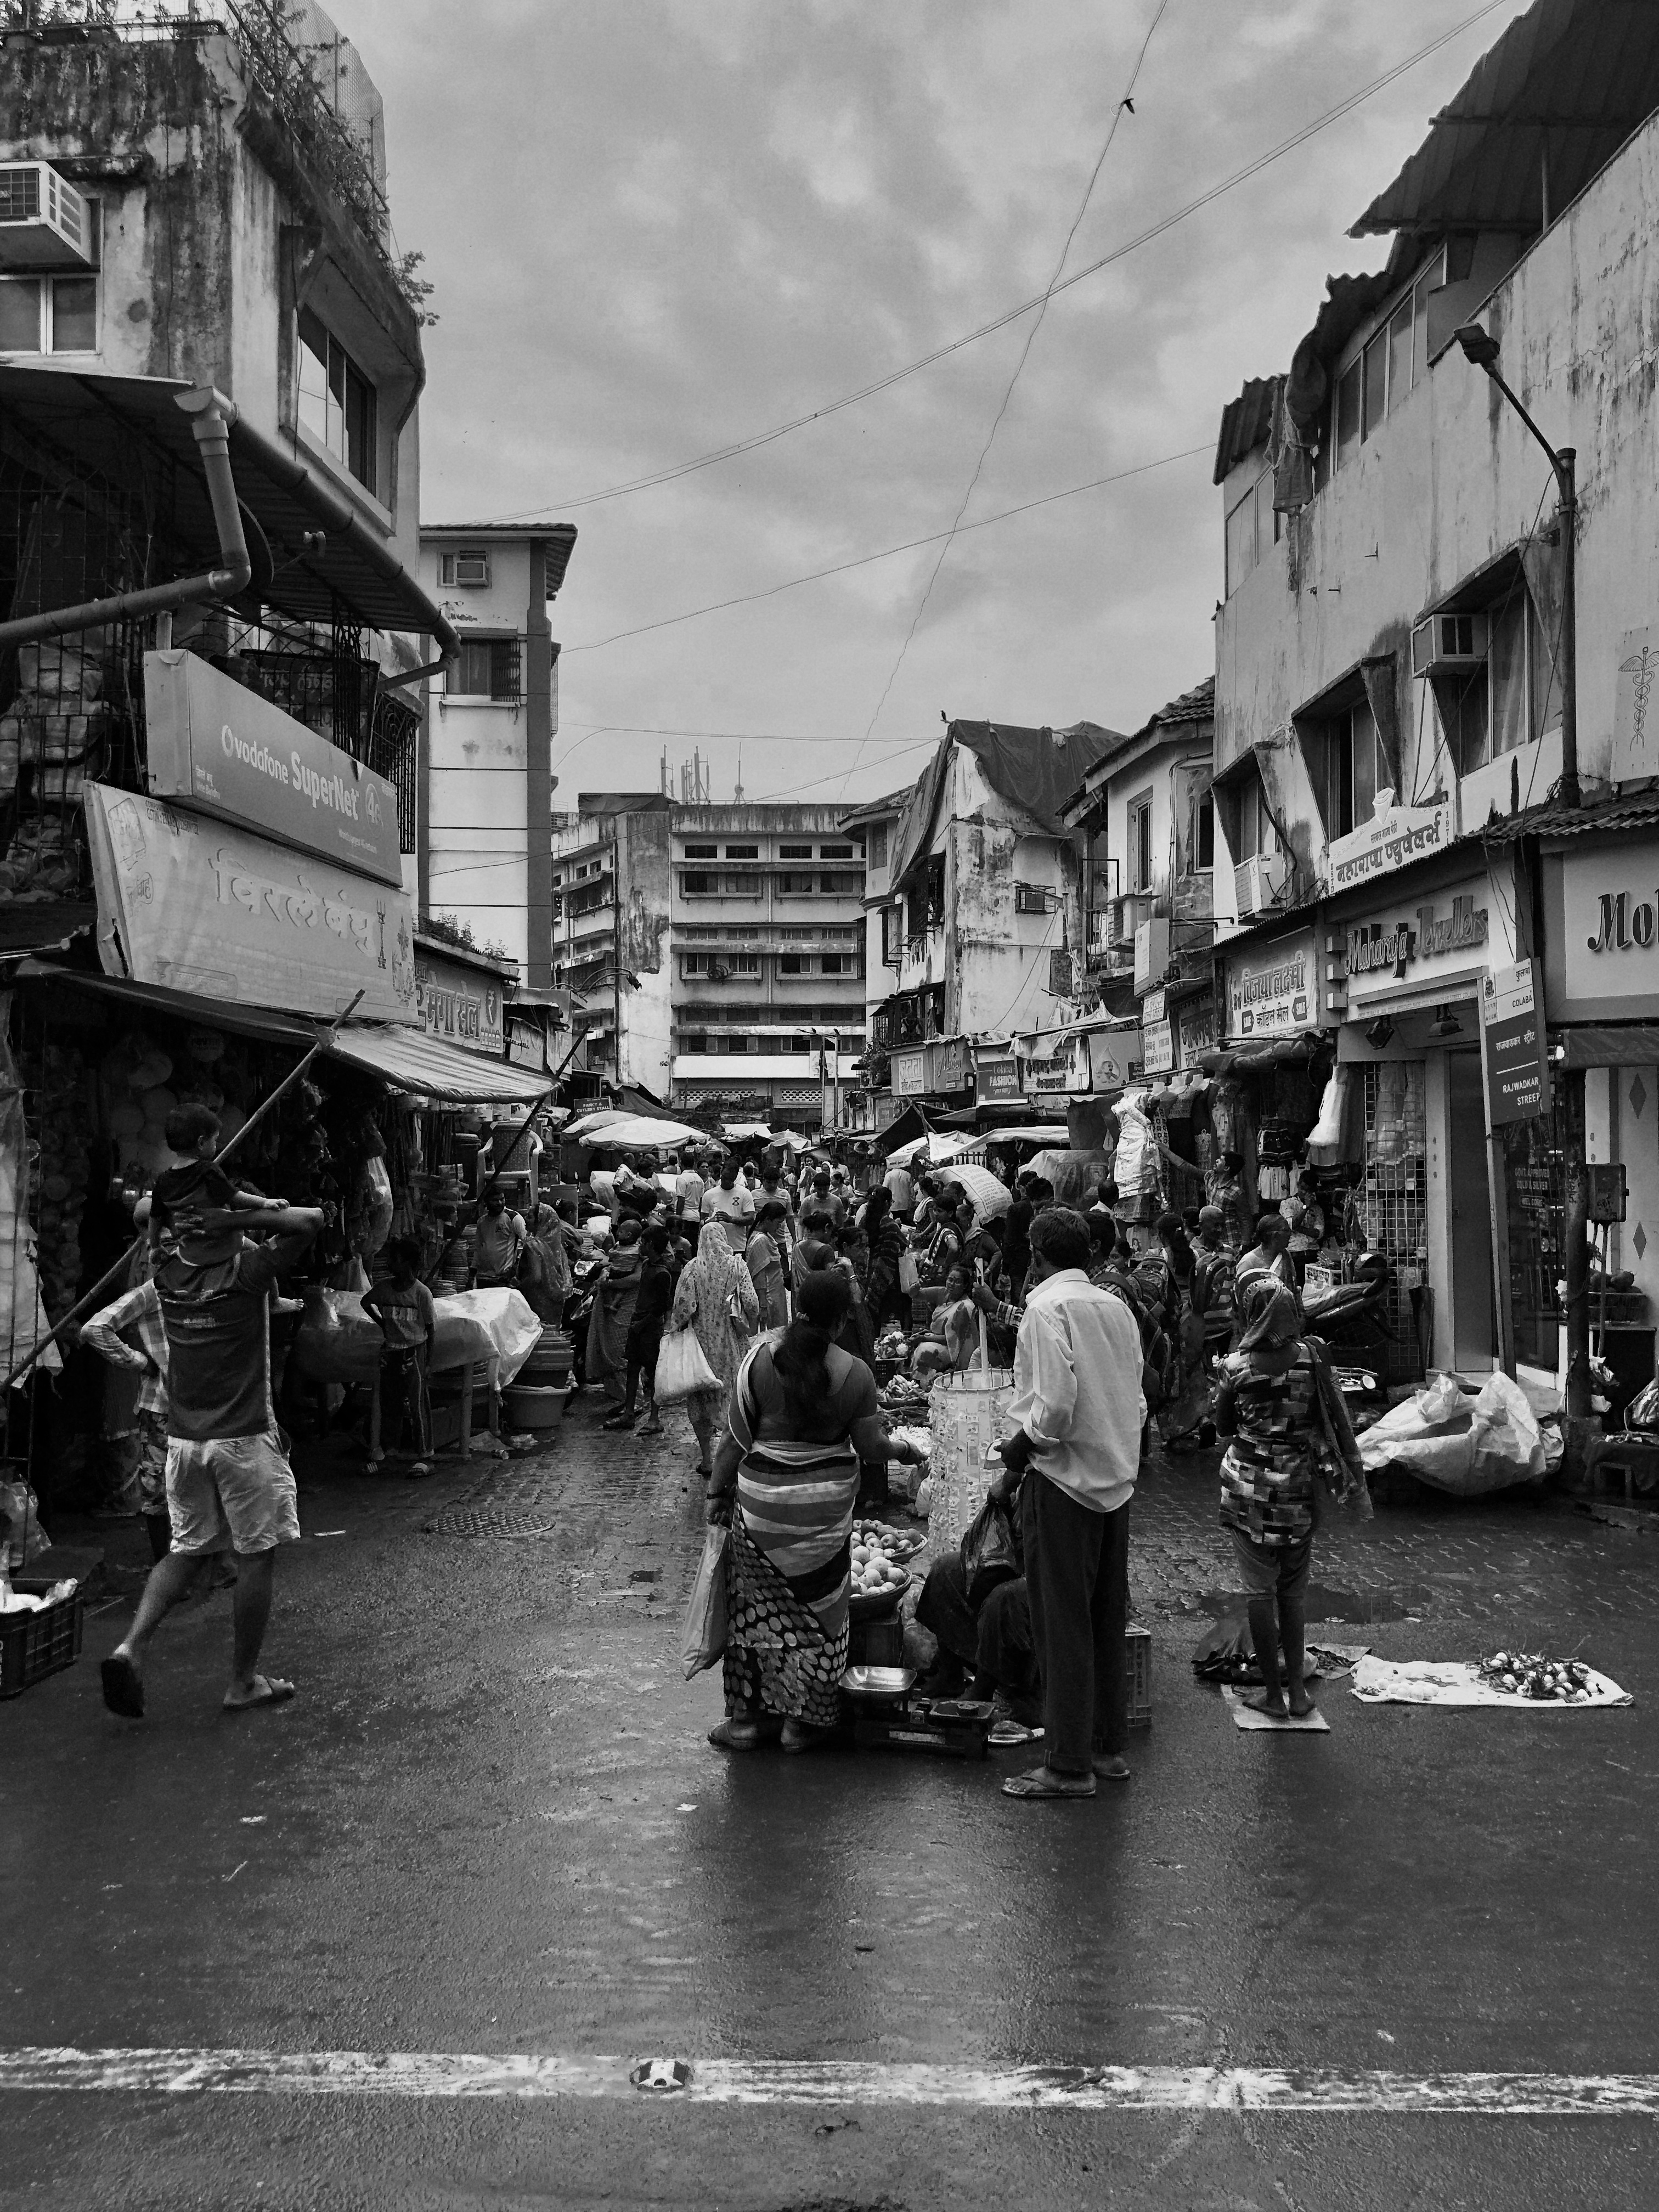 Walking through a rain drenched market in Mumbai, the melancholy and wet mood made for a perfect monochromatic shot.